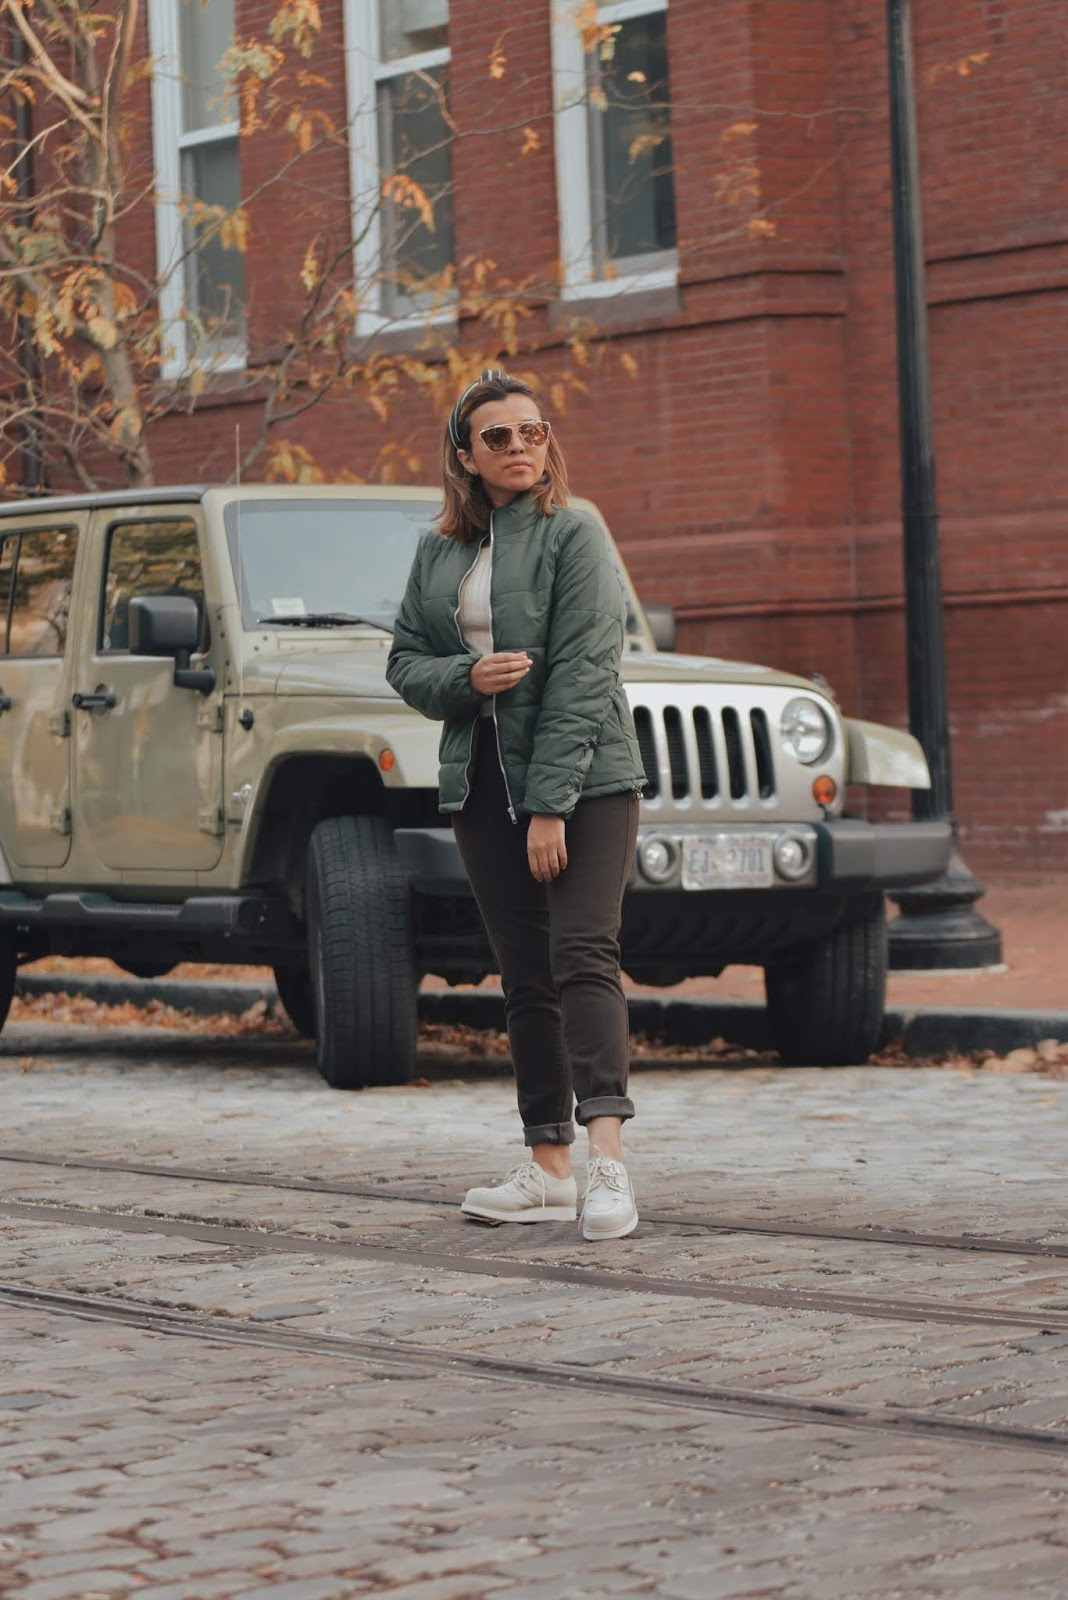 Army Green Quilted Zip-Up Puffer Parka Jacket-mariestilo-lookoftheday-dcblogger-streetstyle-fashionblogger-lookbook store-lbsdaily-moda-